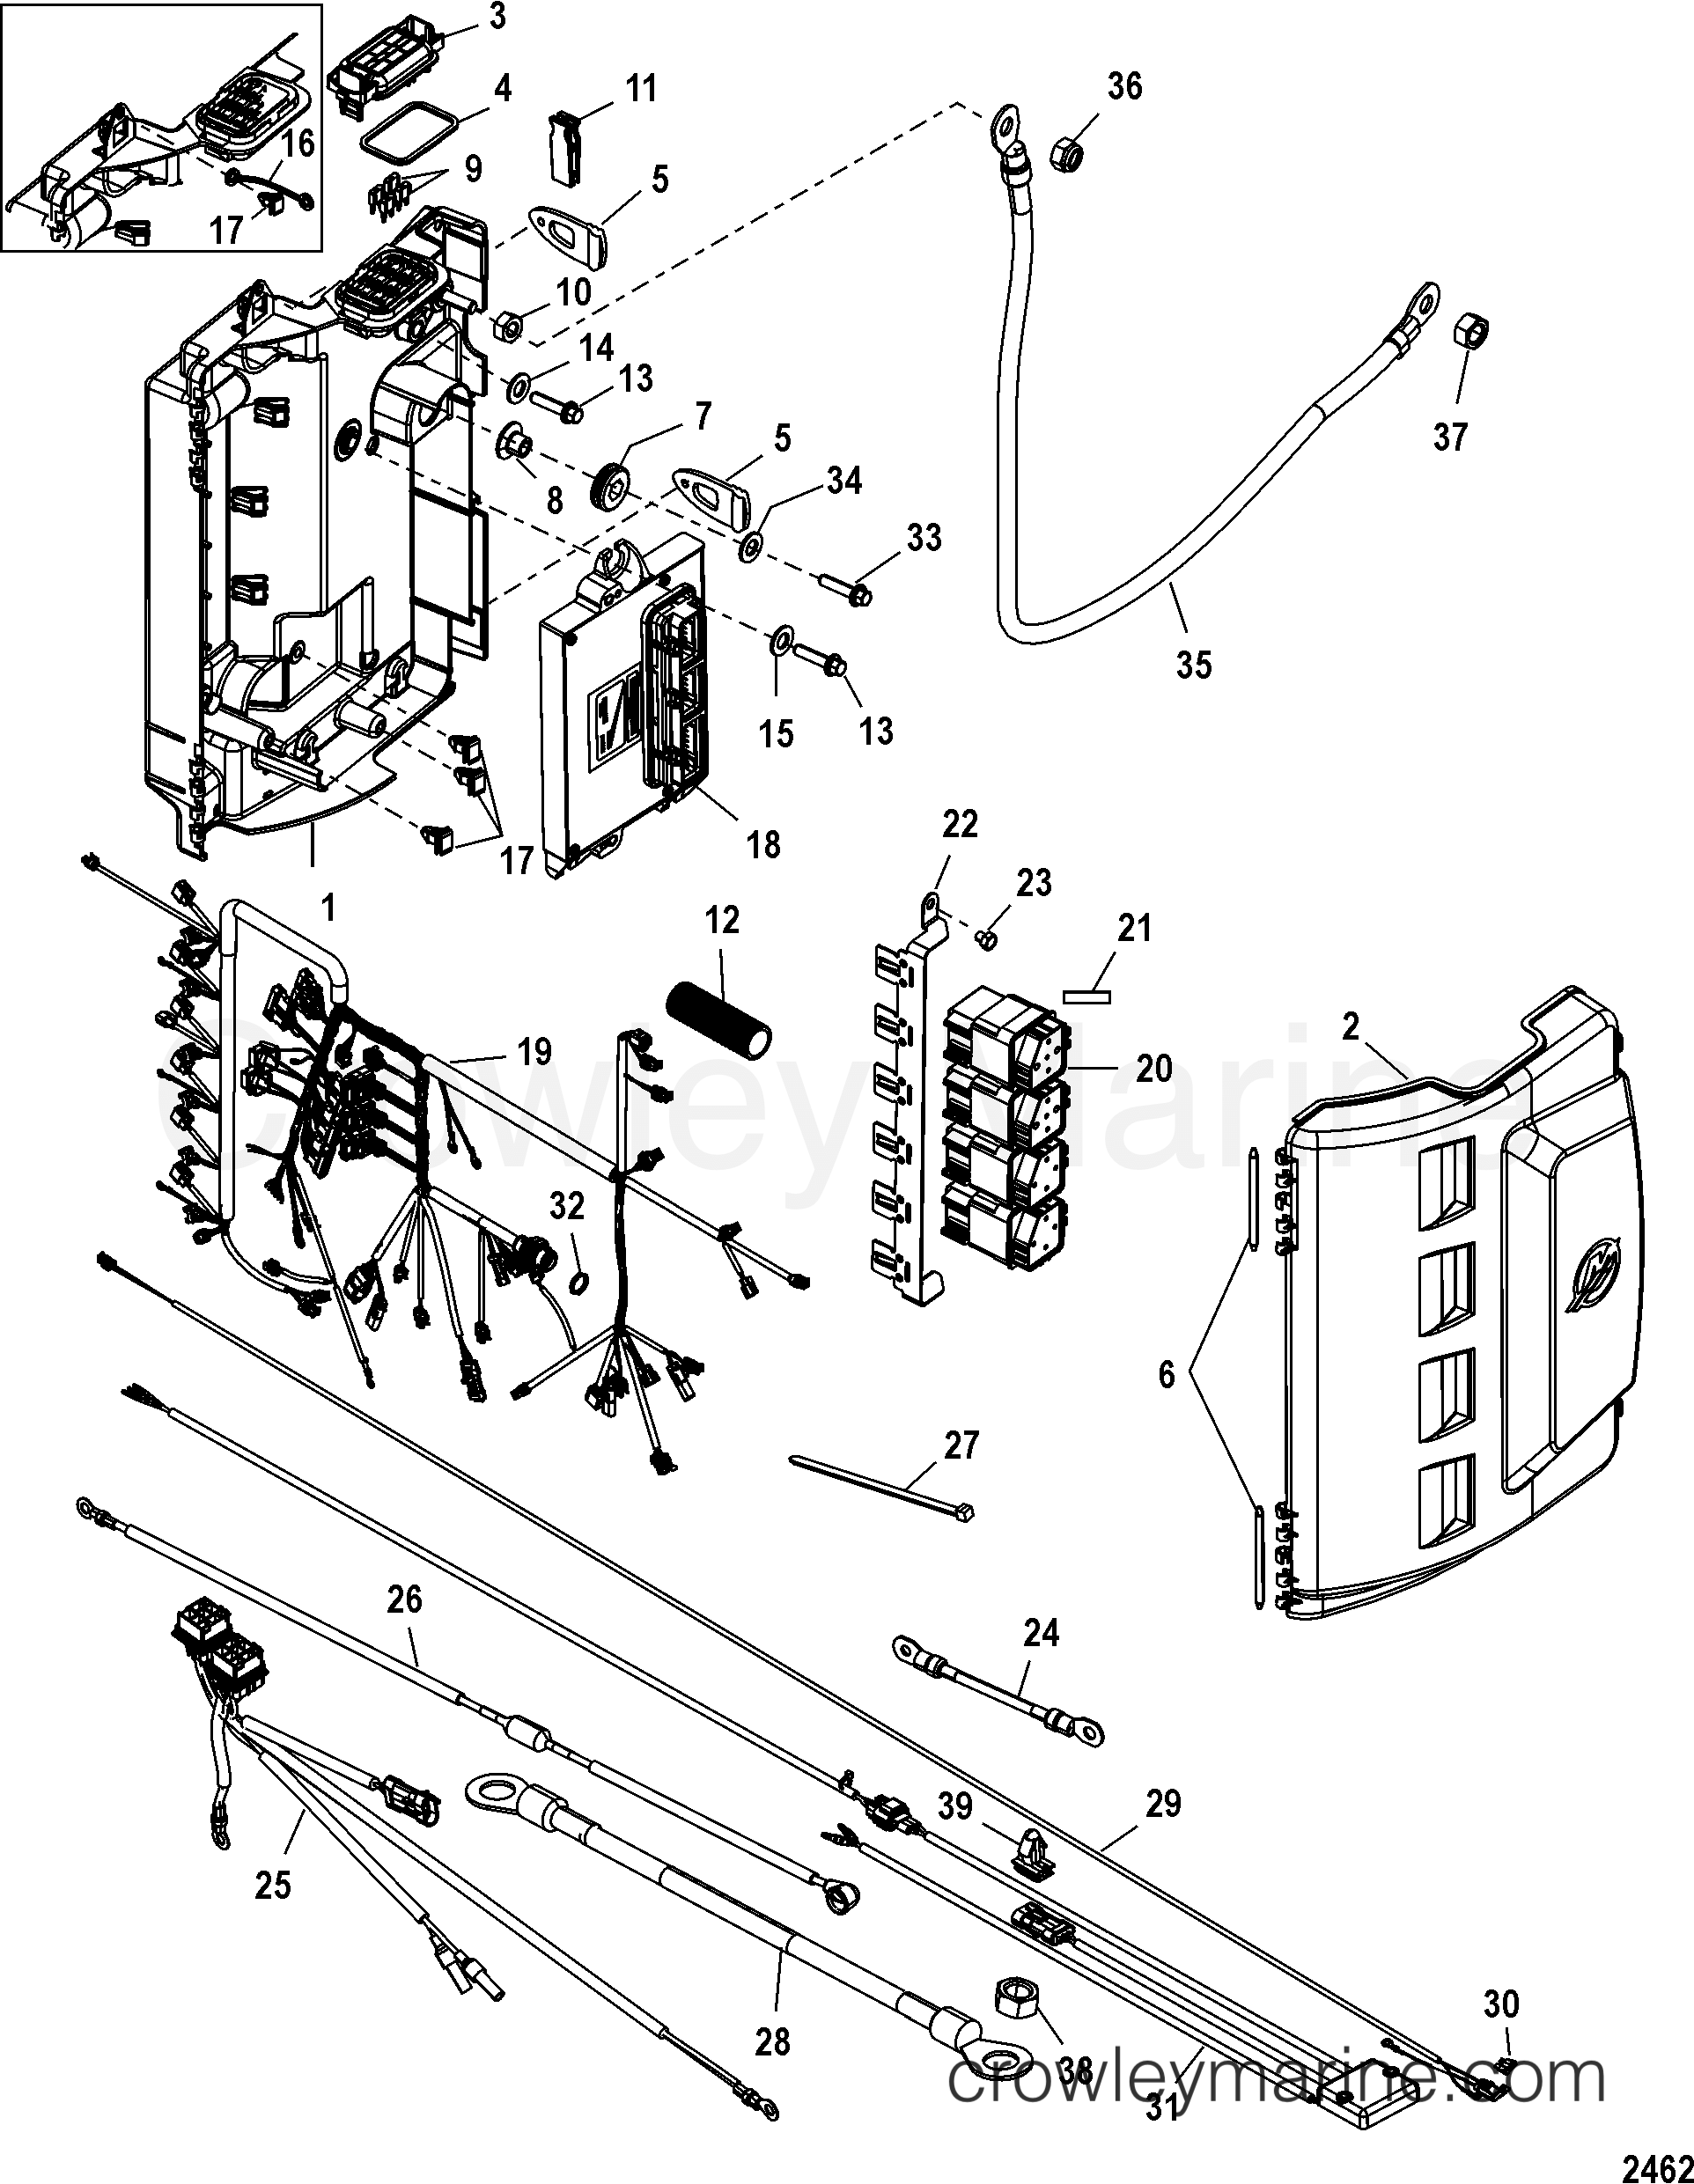 electrical box components